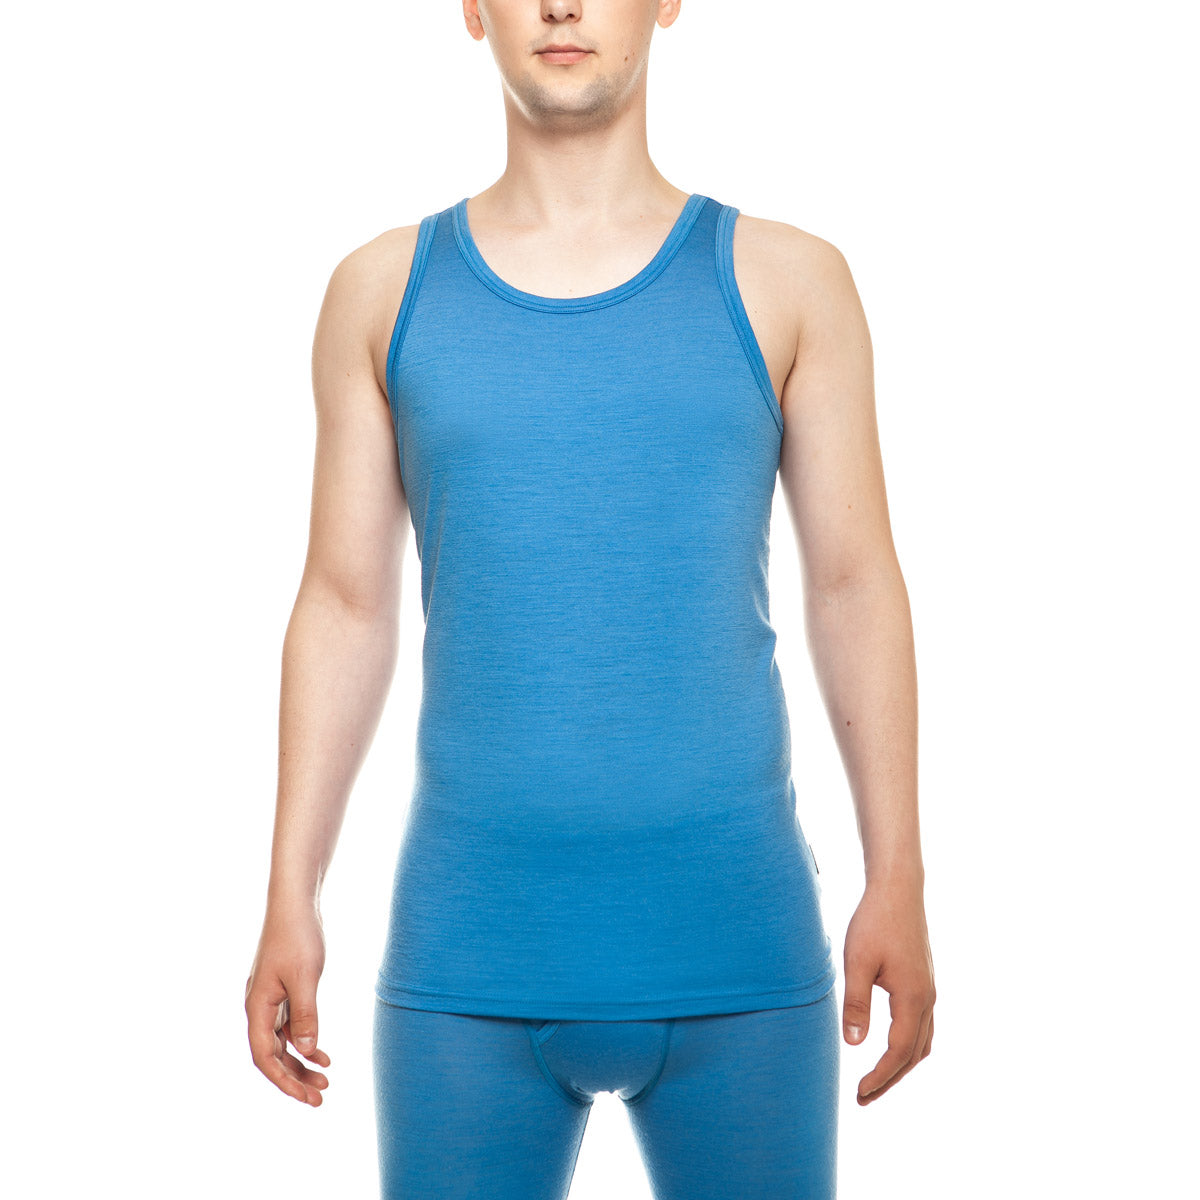 menique Men's Merino 160 Tank Top Light Blue Color